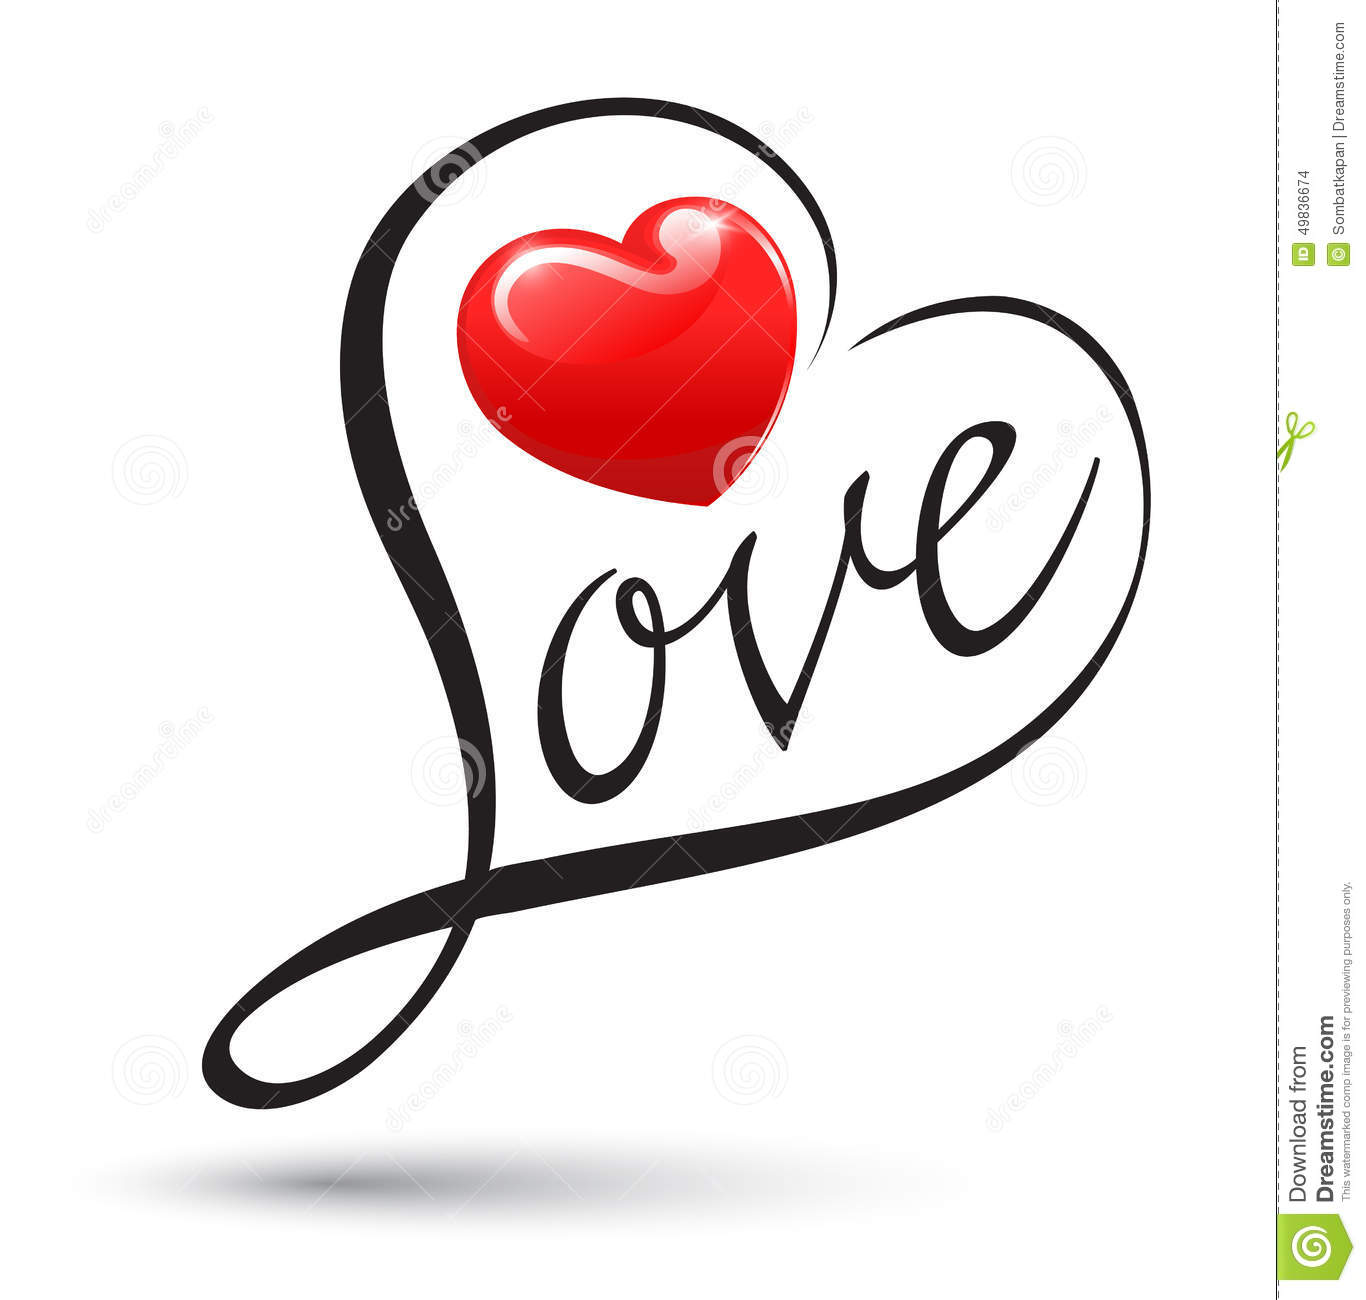 Https Www Dreamstime Com Stock Illustration Love Heart Typography Love Calligraphy Vector Illustration Can Use Element Concept Wedding Valentine S Day Image49836674